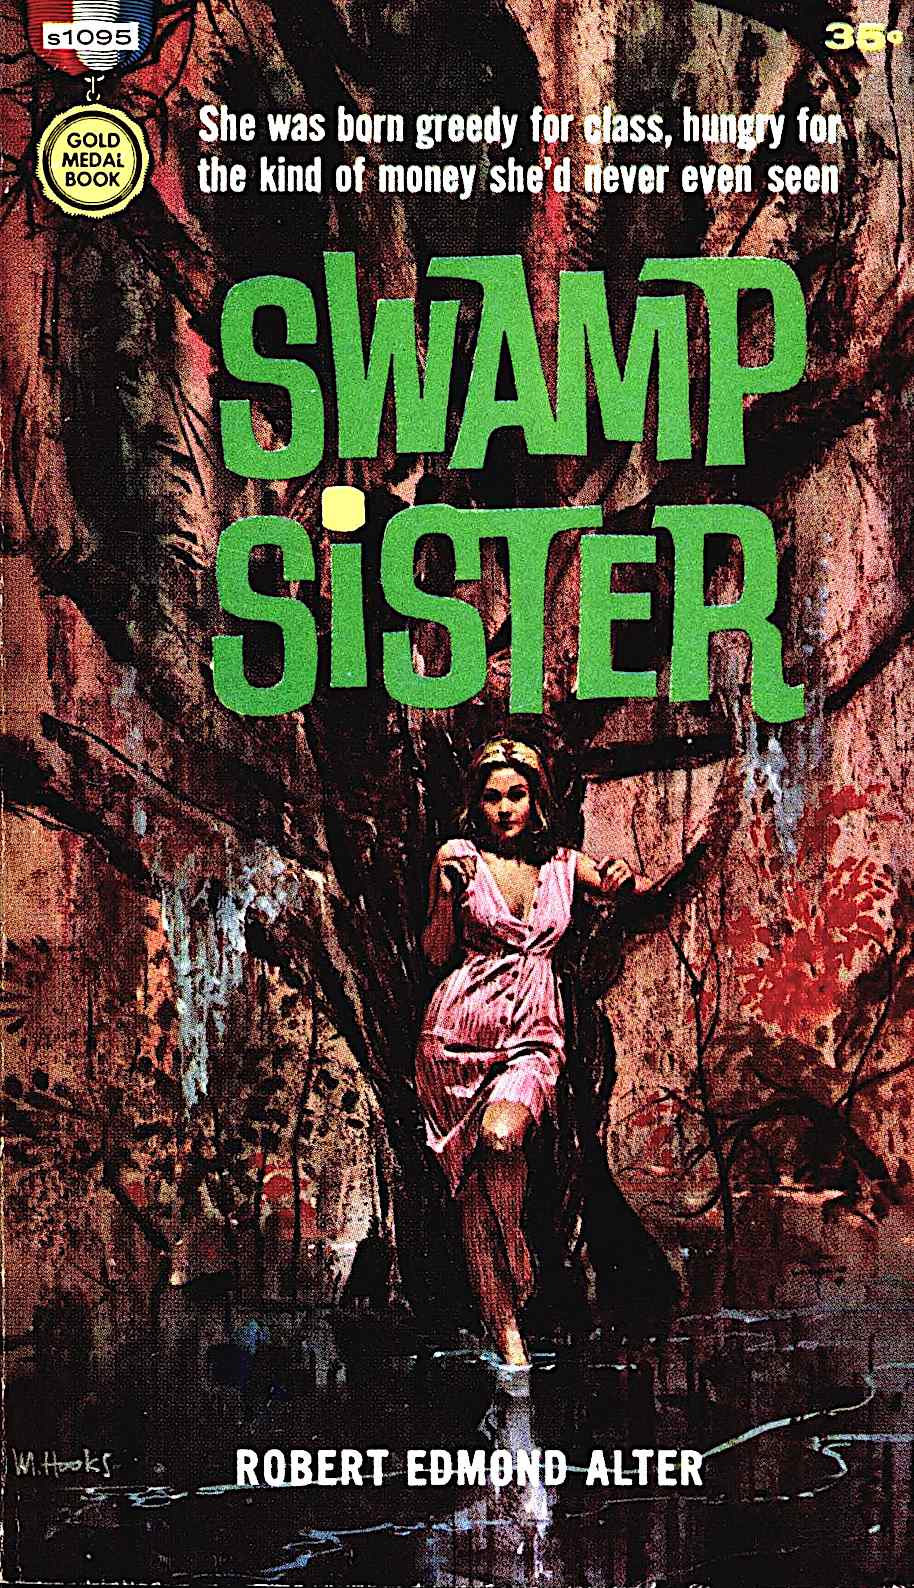 a Mitchell Hooks book cover illustration for Swamp Sister by Robert Edmond Alter